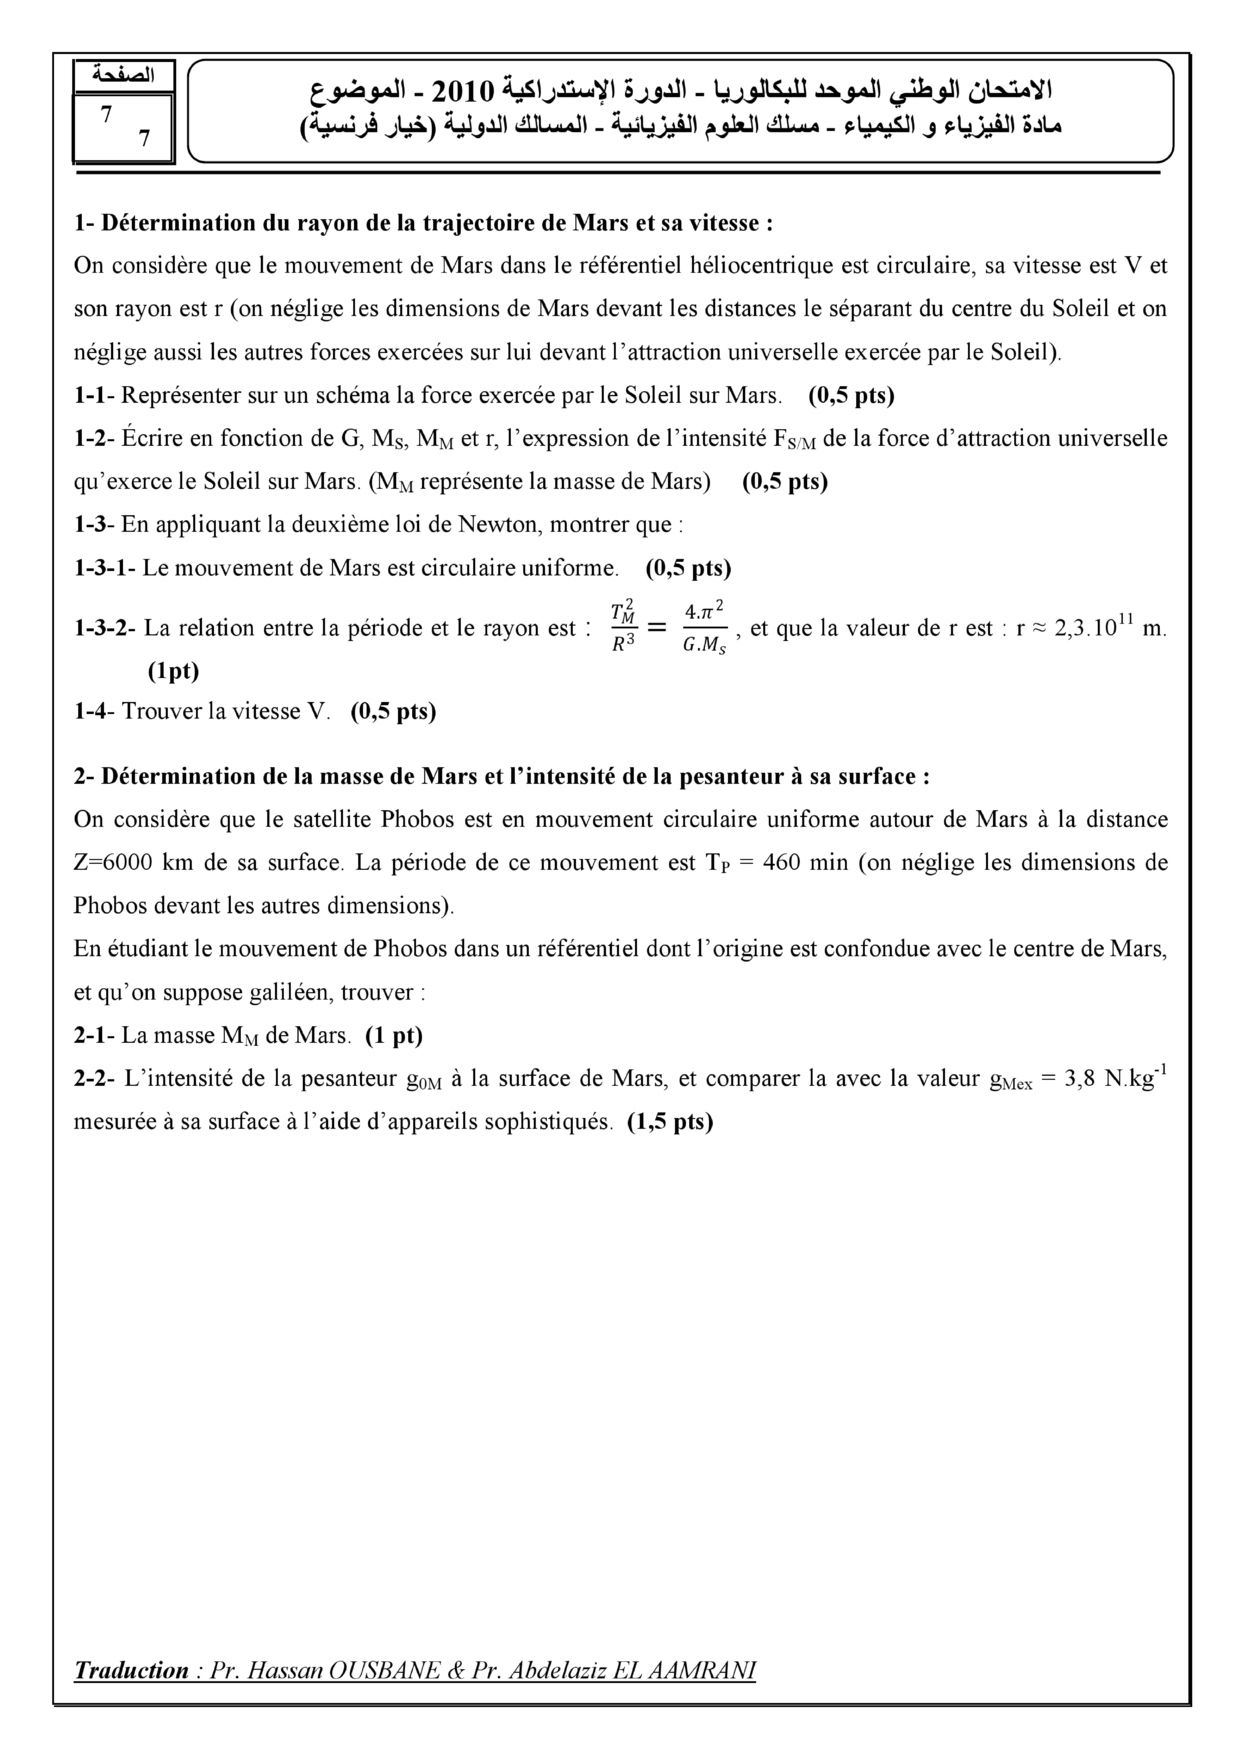 Examen National Physique-Chimie SPC 2010 Rattrapage - Sujet7.jpg